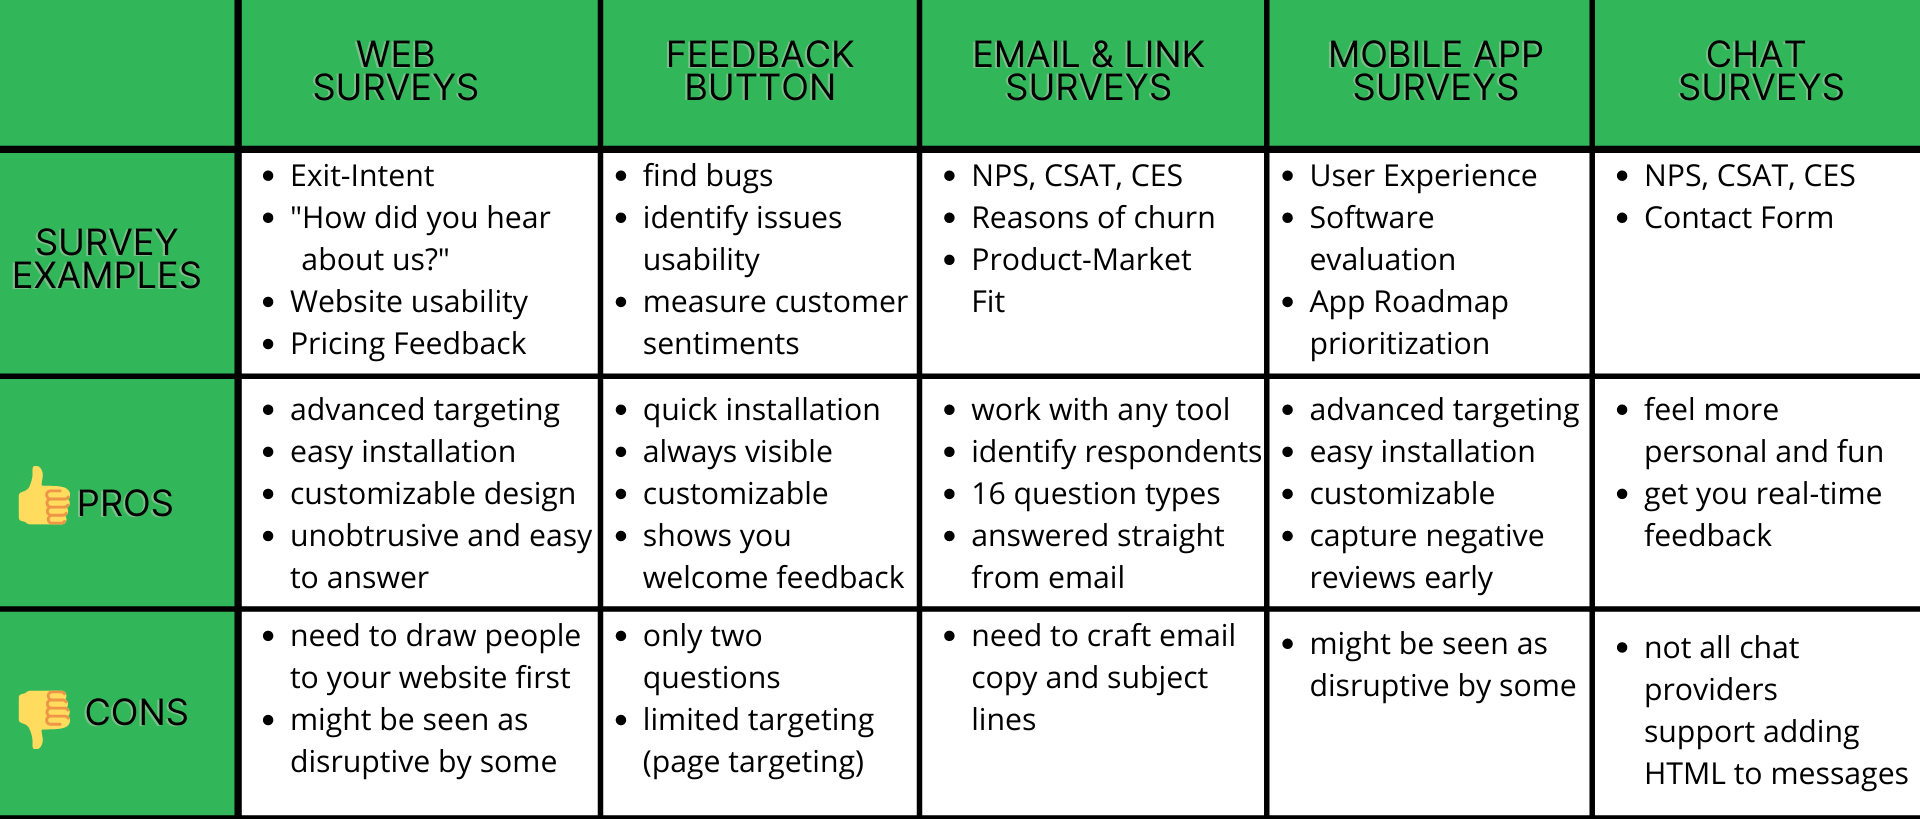 5 methods on how to collect customer feedback with pros and cons